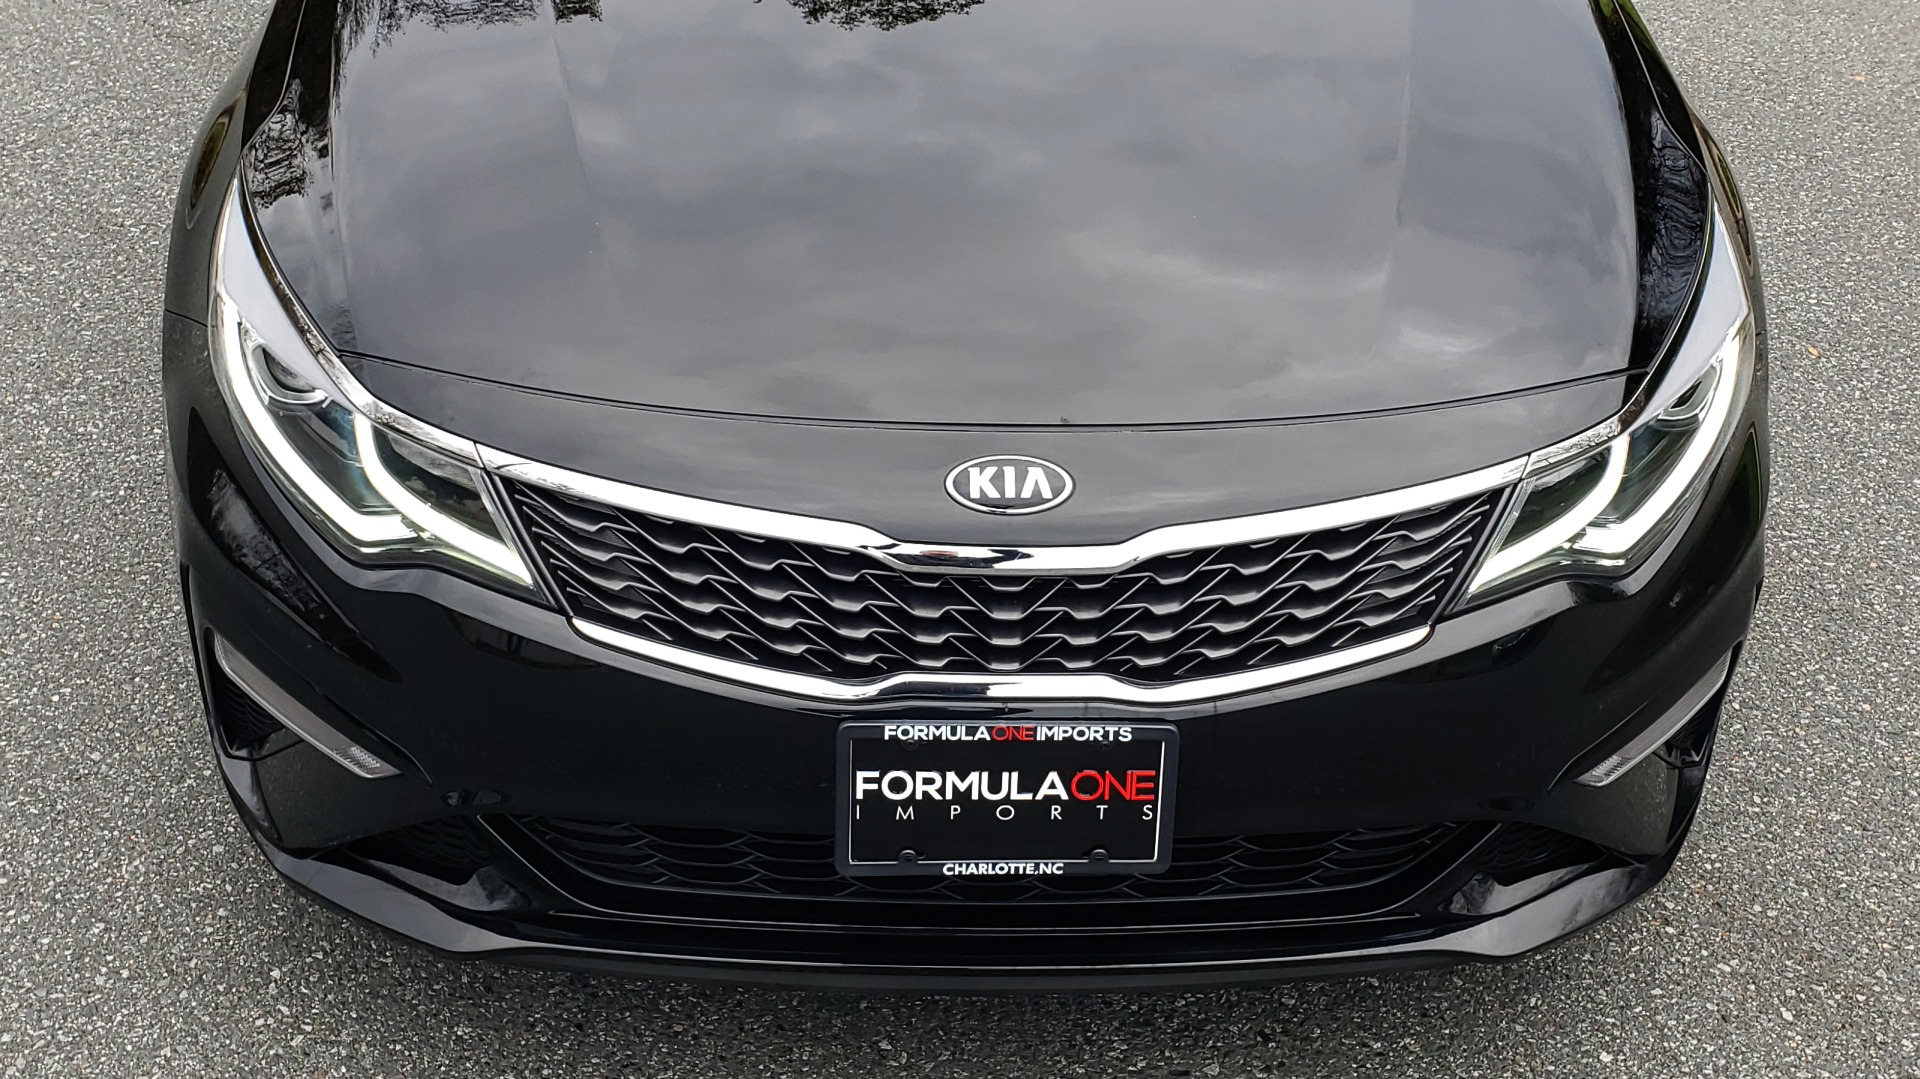 Used 2019 Kia OPTIMA LX AUTO / 2.4L 4-CYL / 6-SPD AUTO / REARVIEW / LOW MILES for sale $17,995 at Formula Imports in Charlotte NC 28227 19